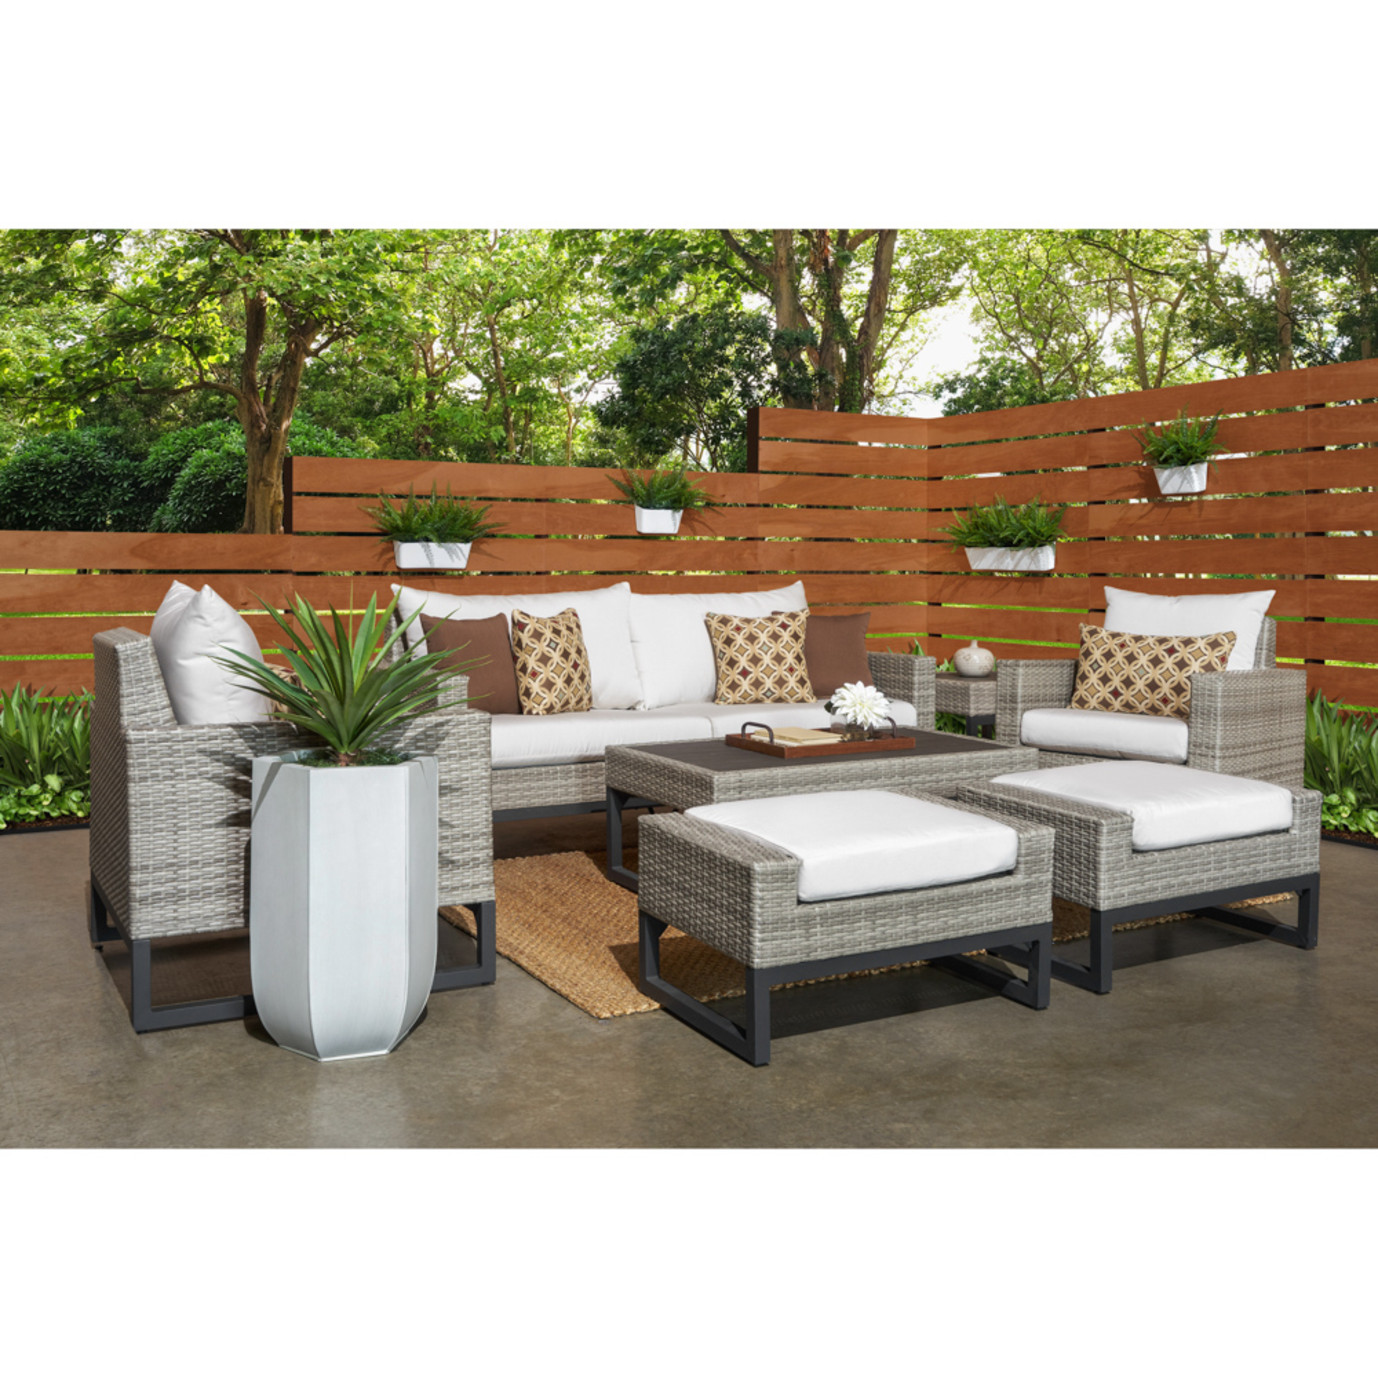 Milo™ Gray 7pc Deep Seating Set - Moroccan Cream